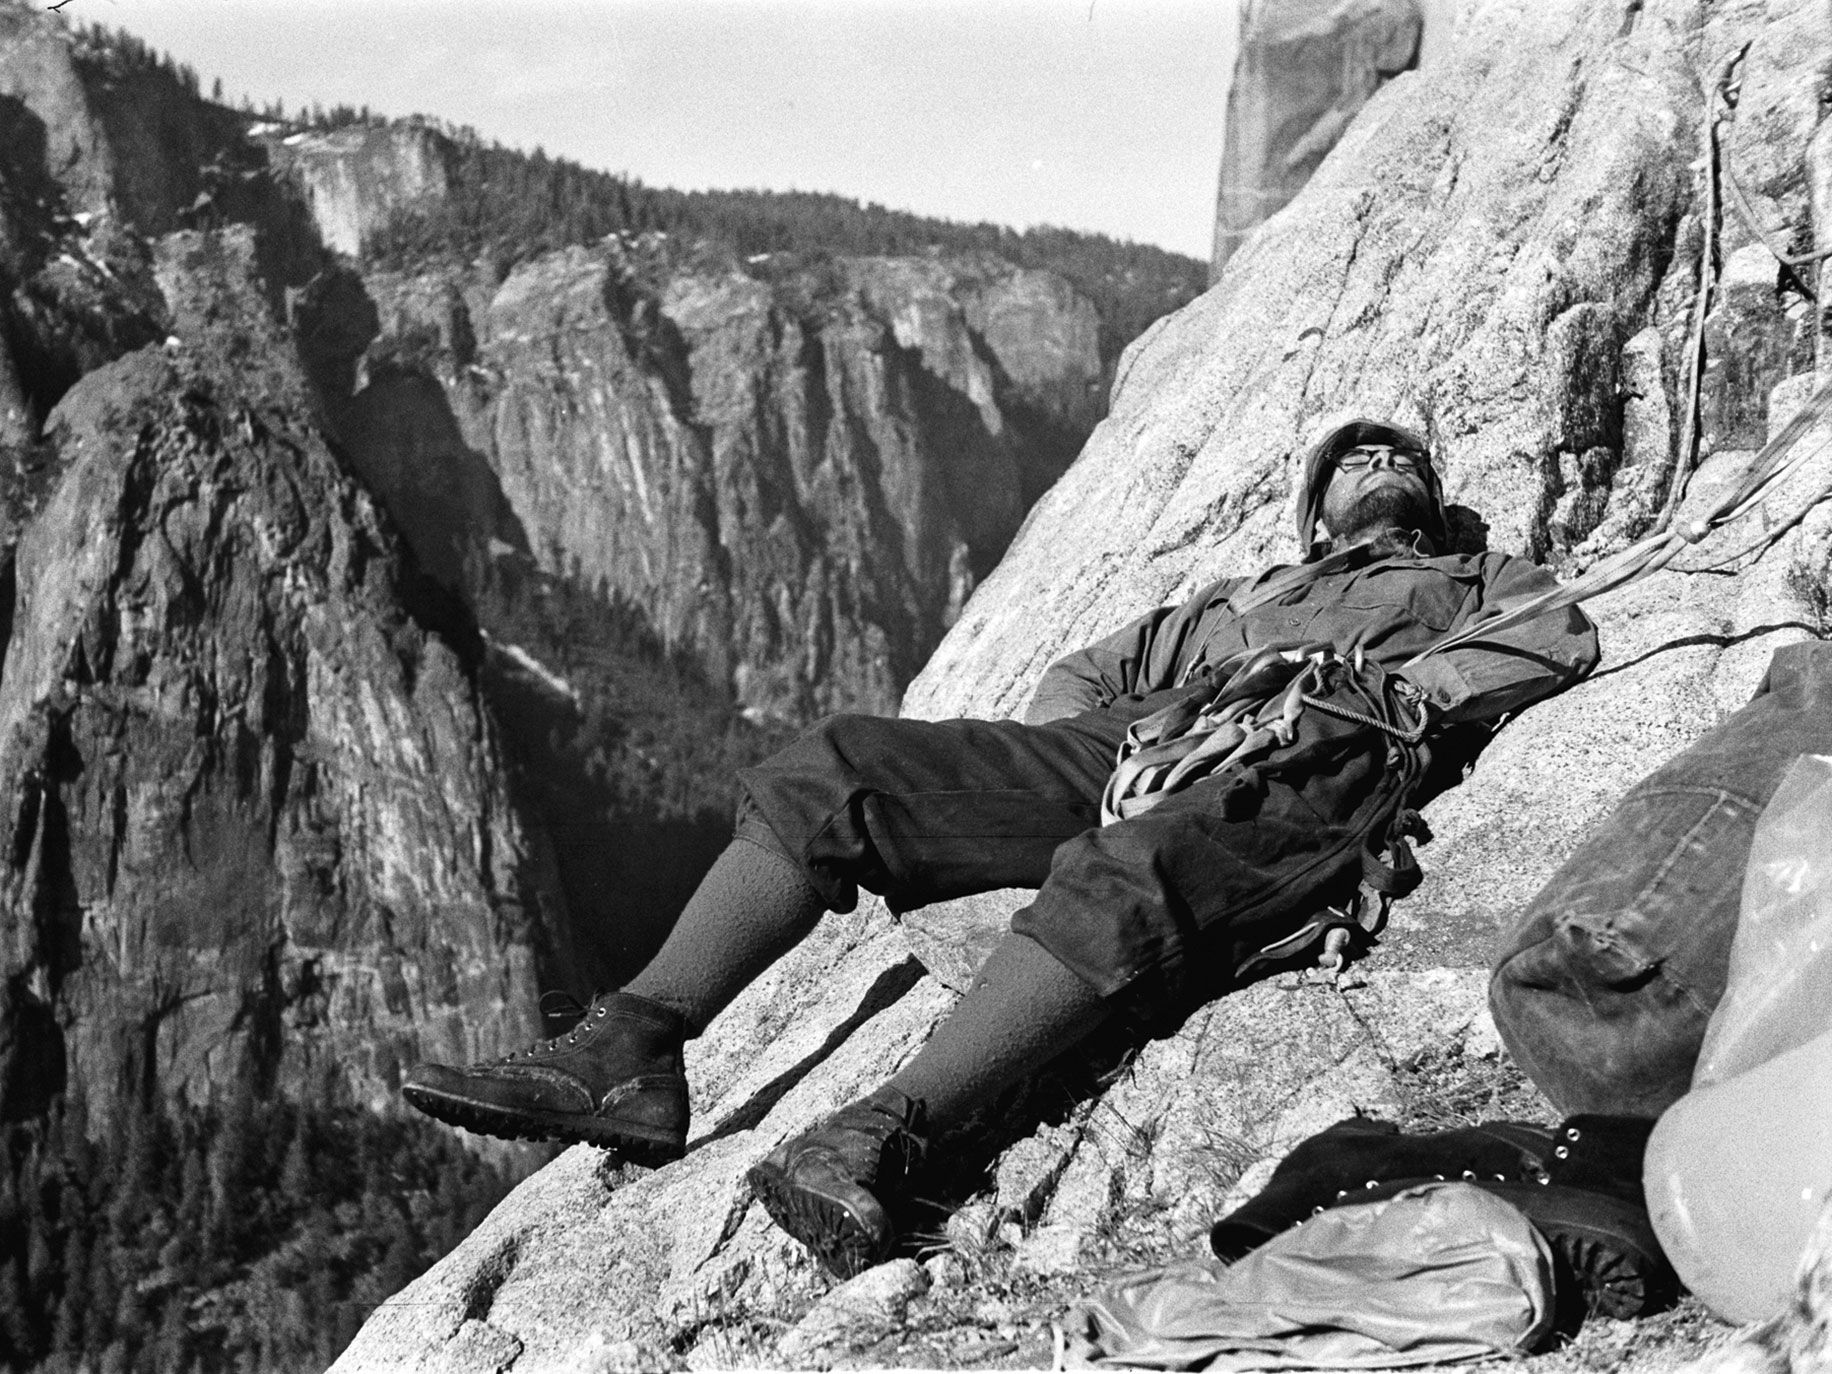 Yosemite climbing pioneer Royal Robbins takes a well-earned nap during a 1964 ascent of El Capitan.